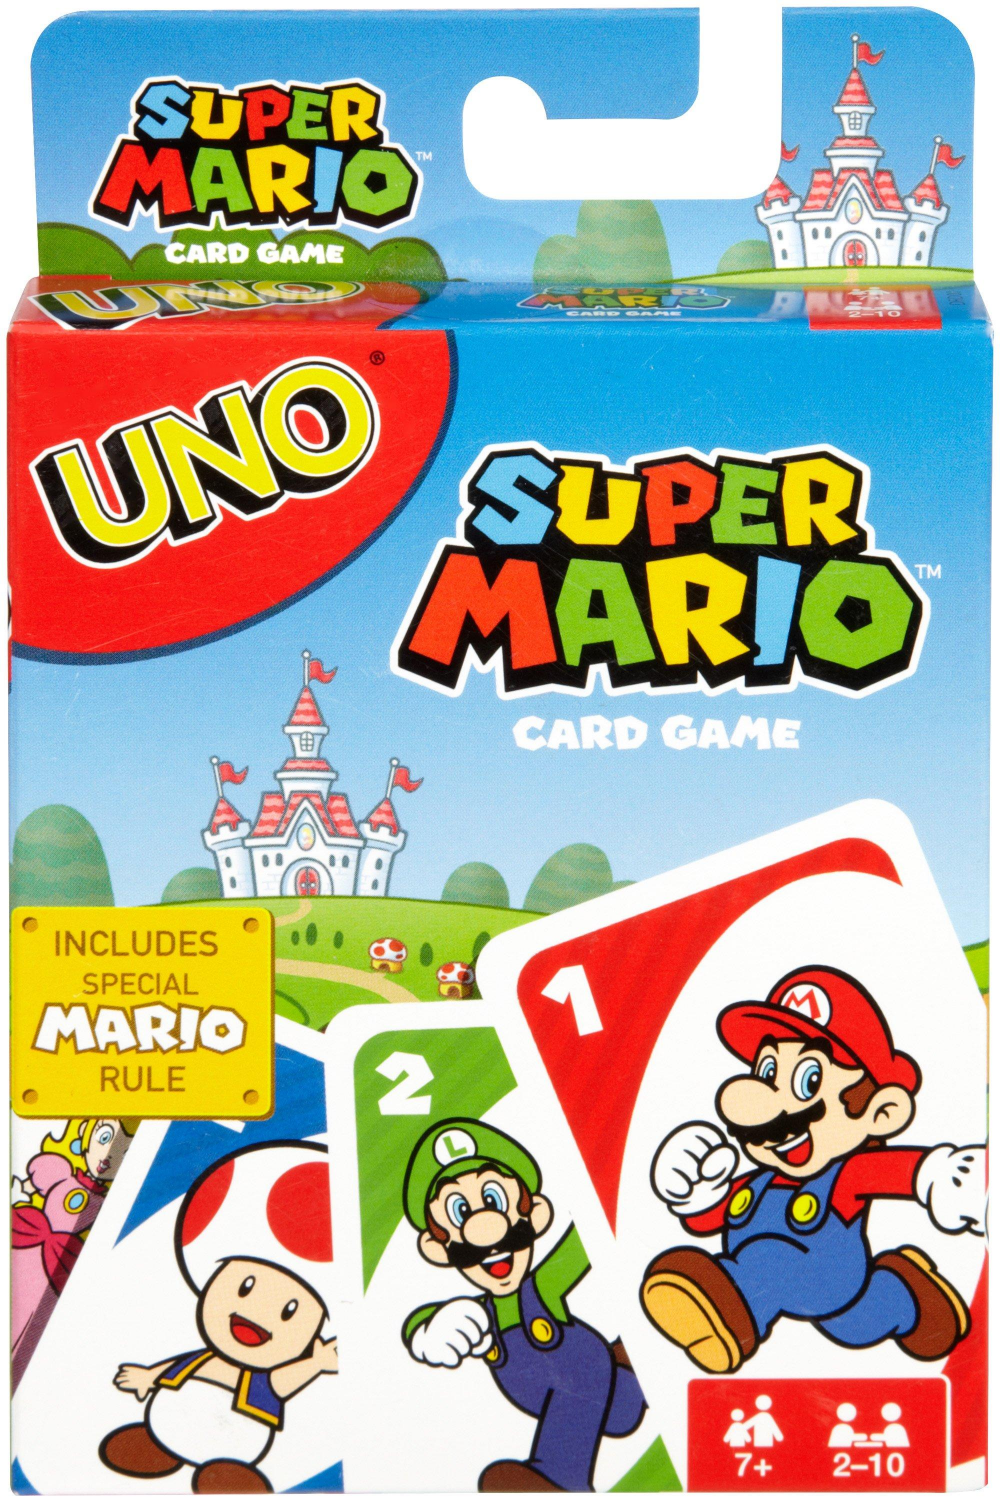 UNO Super Mario Card Game in 2020 (With images) Super